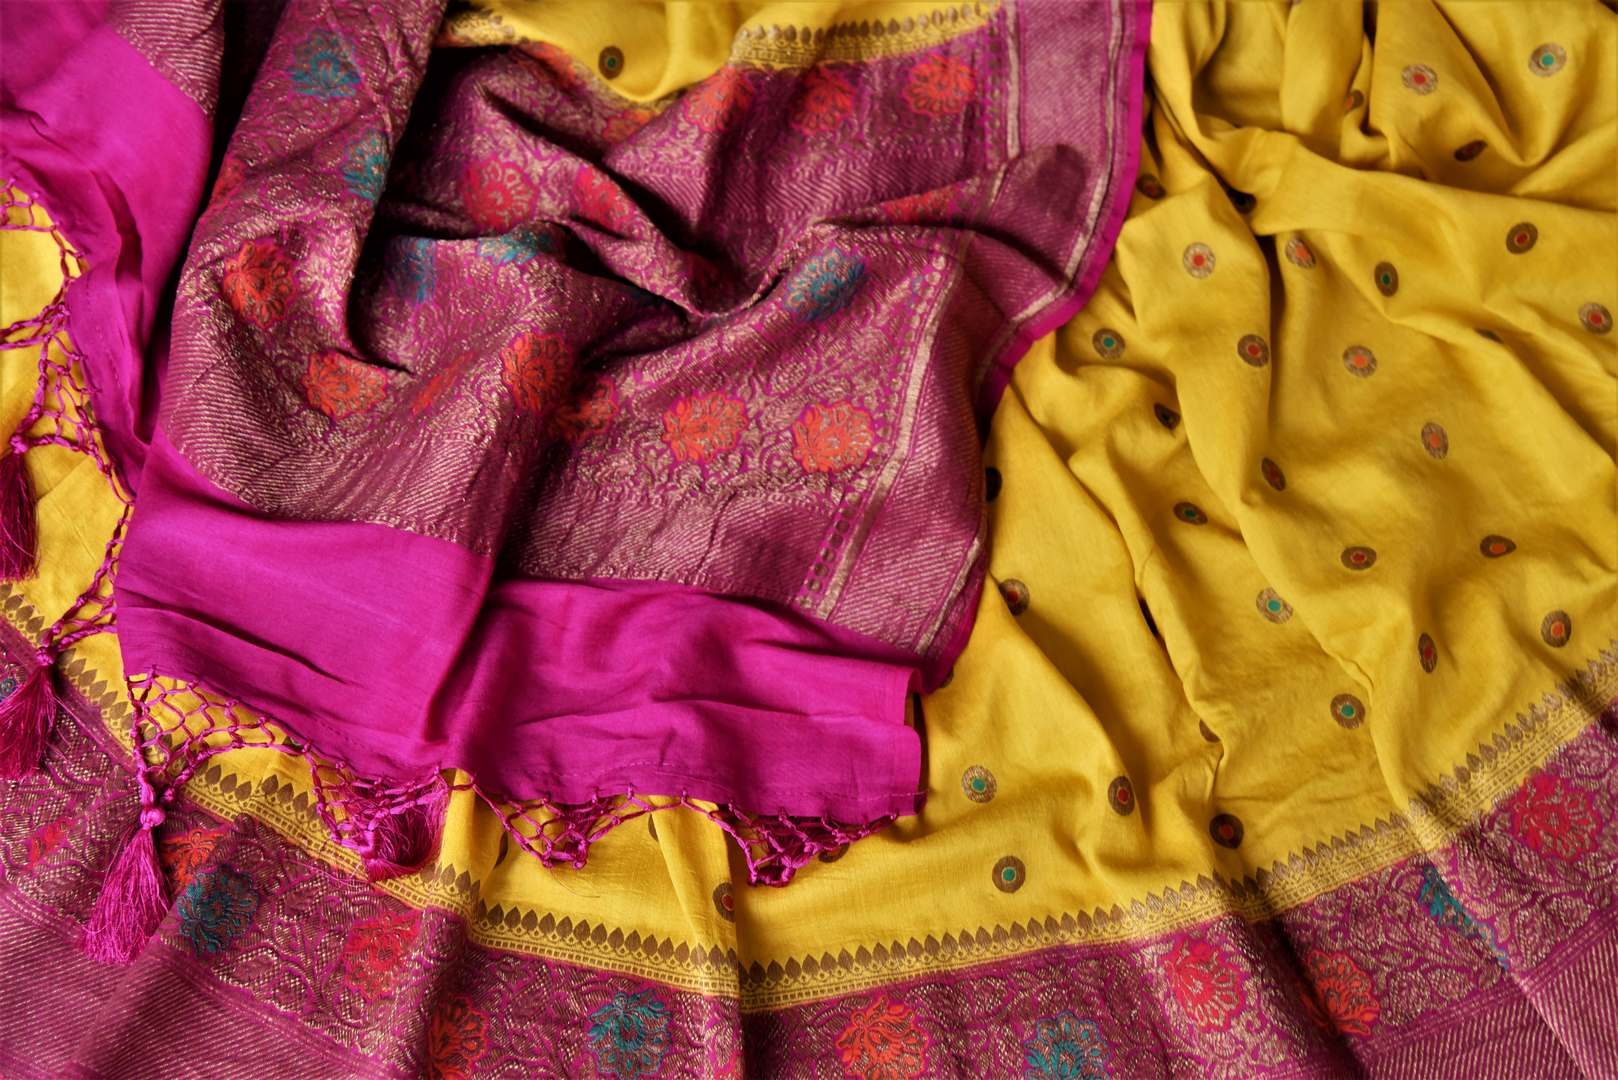 Buy yellow muga Benarasi saree online in USA with pink antique zari floral border. Keep your ethnic style updated with latest designer sarees, handloom sarees, muga silk sarees from Pure Elegance Indian fashion store in USA.-details